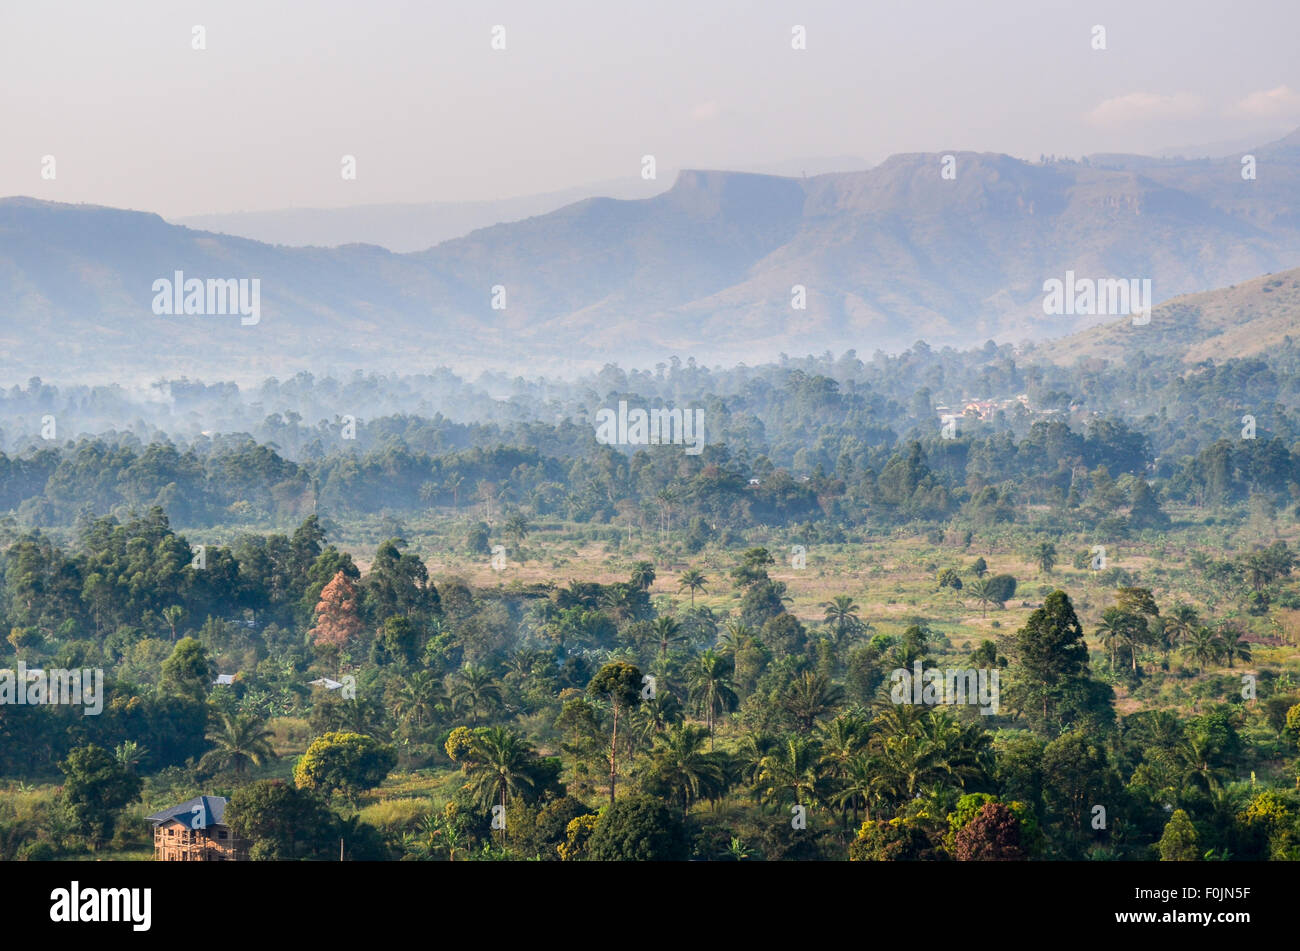 Aerial view of misty rural Cameroon - Stock Image